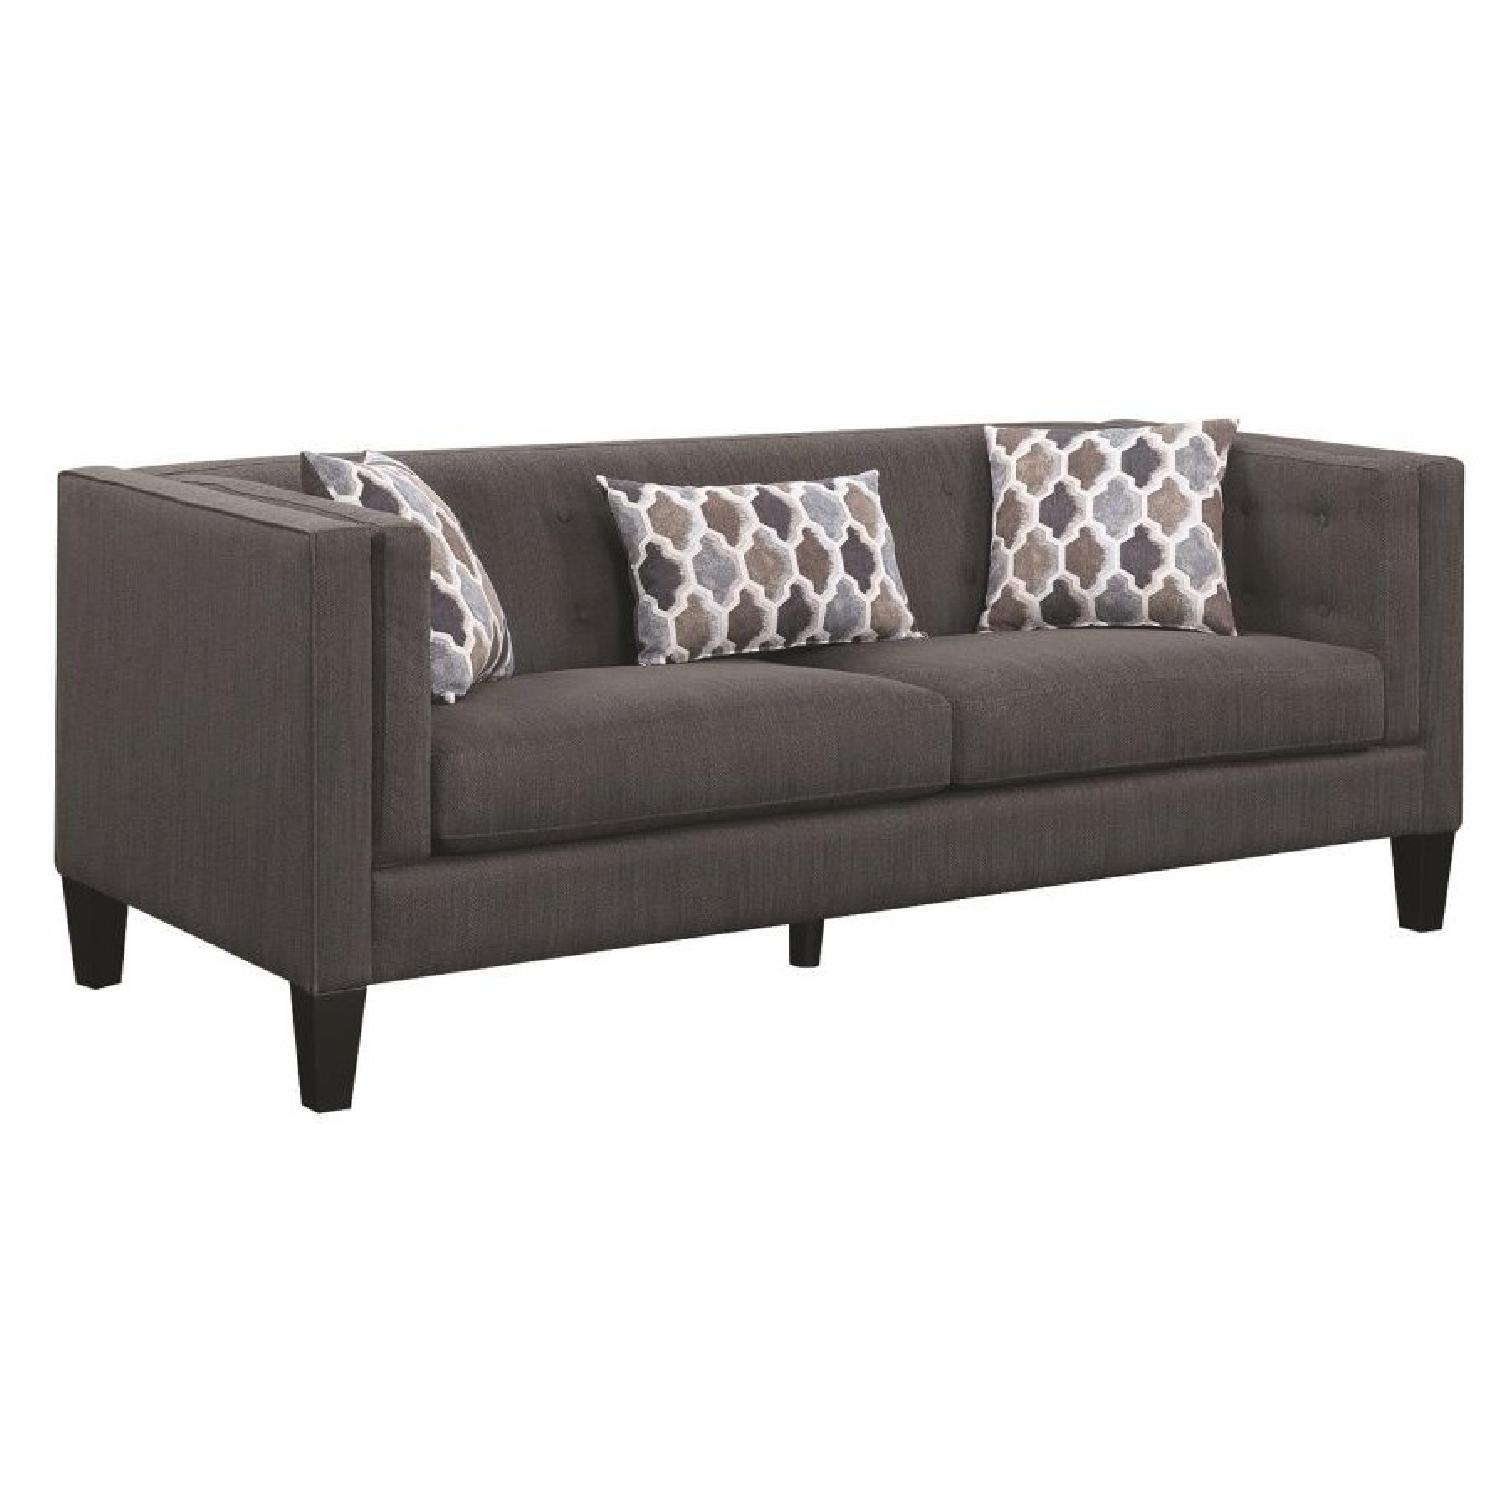 deconstructed shelter arm sofa review sectional sofas nj double cushion style w tufted and aptdeco